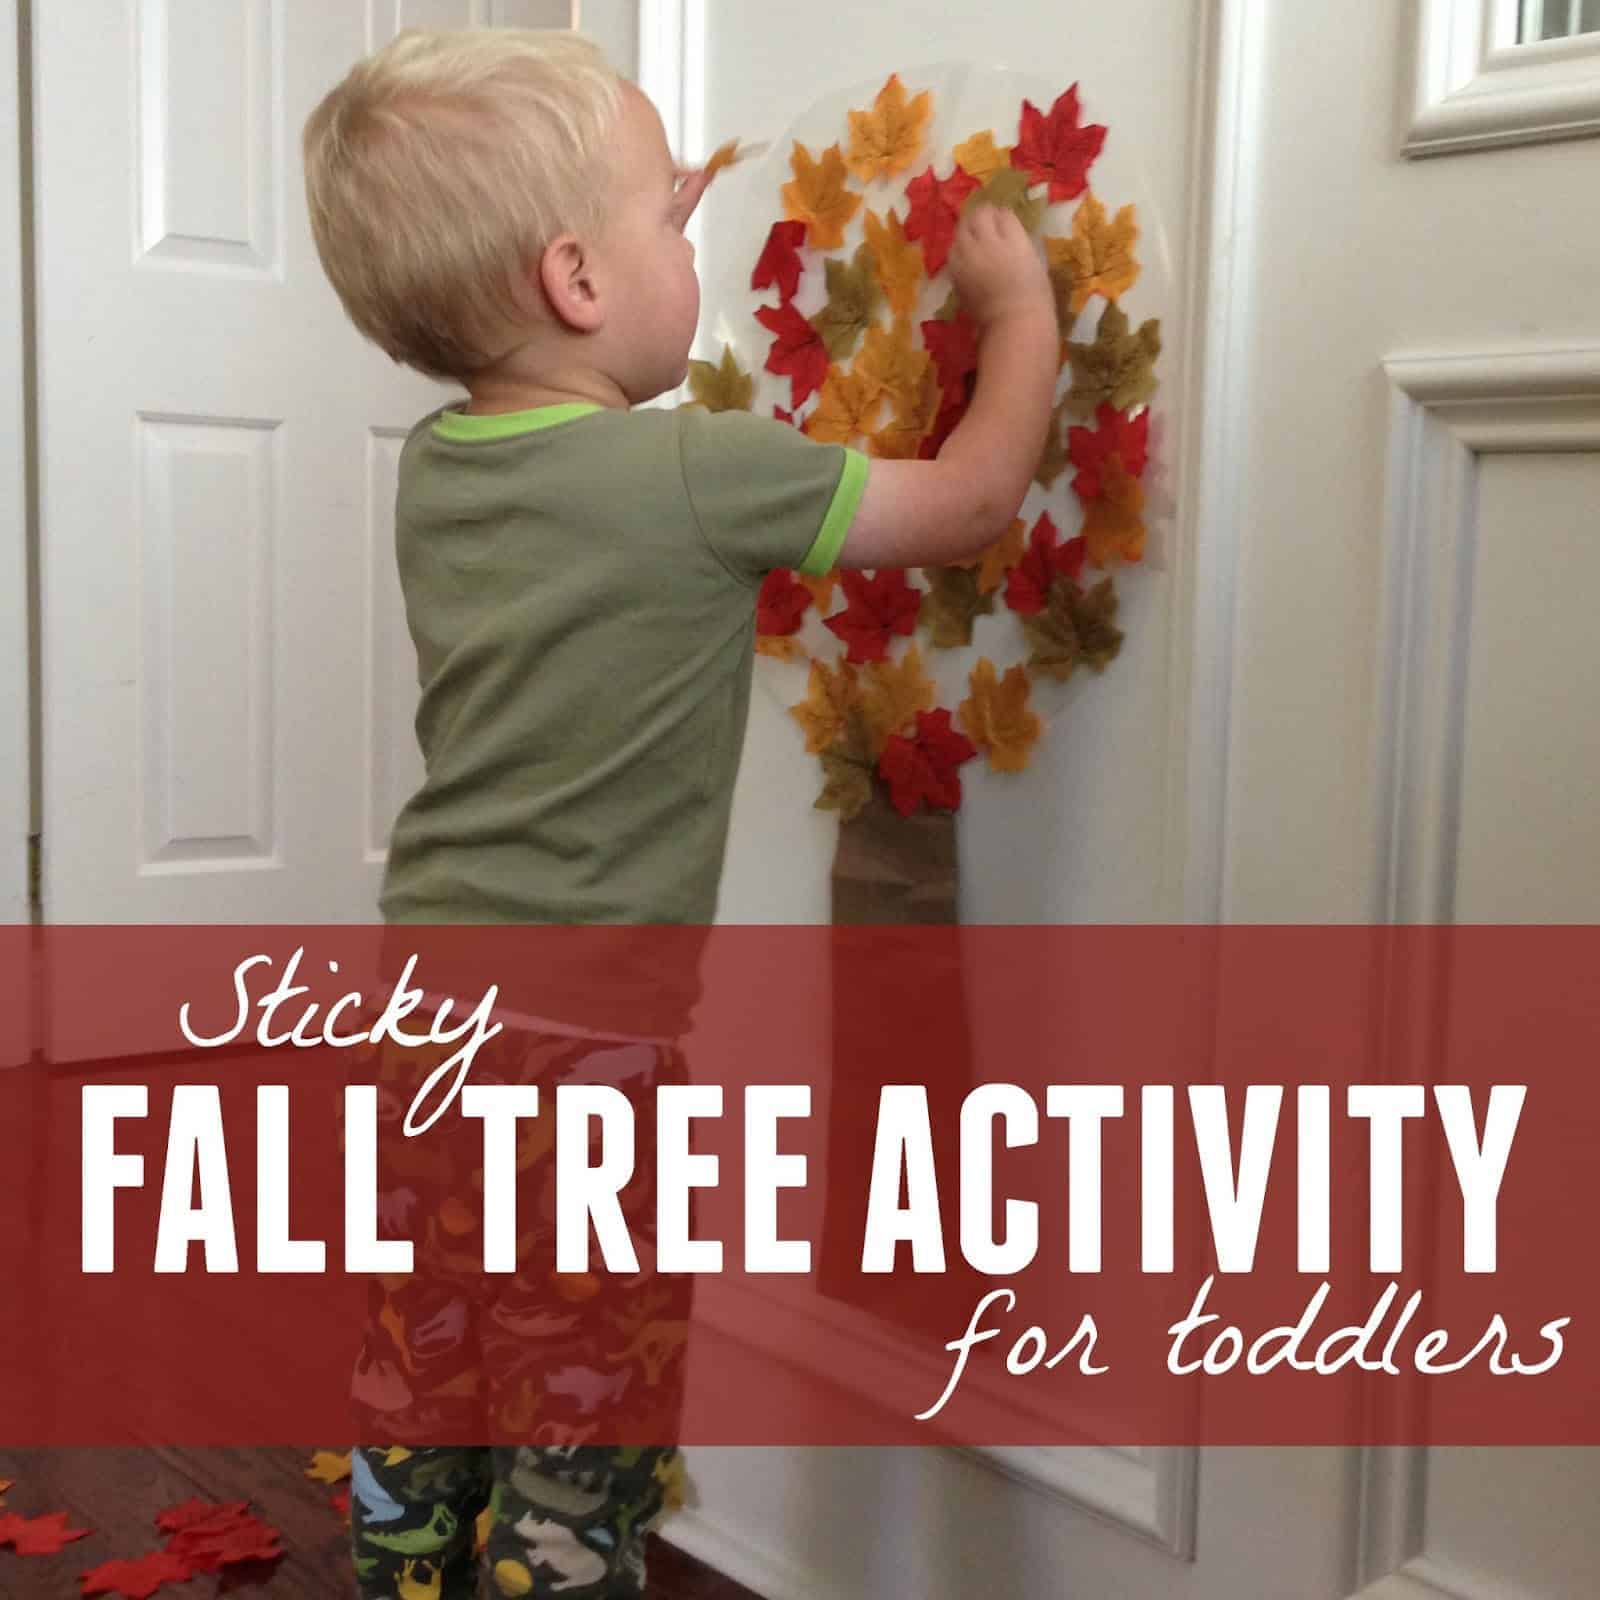 Easy Fall Tree Activity For Toddlers Toddler Approved